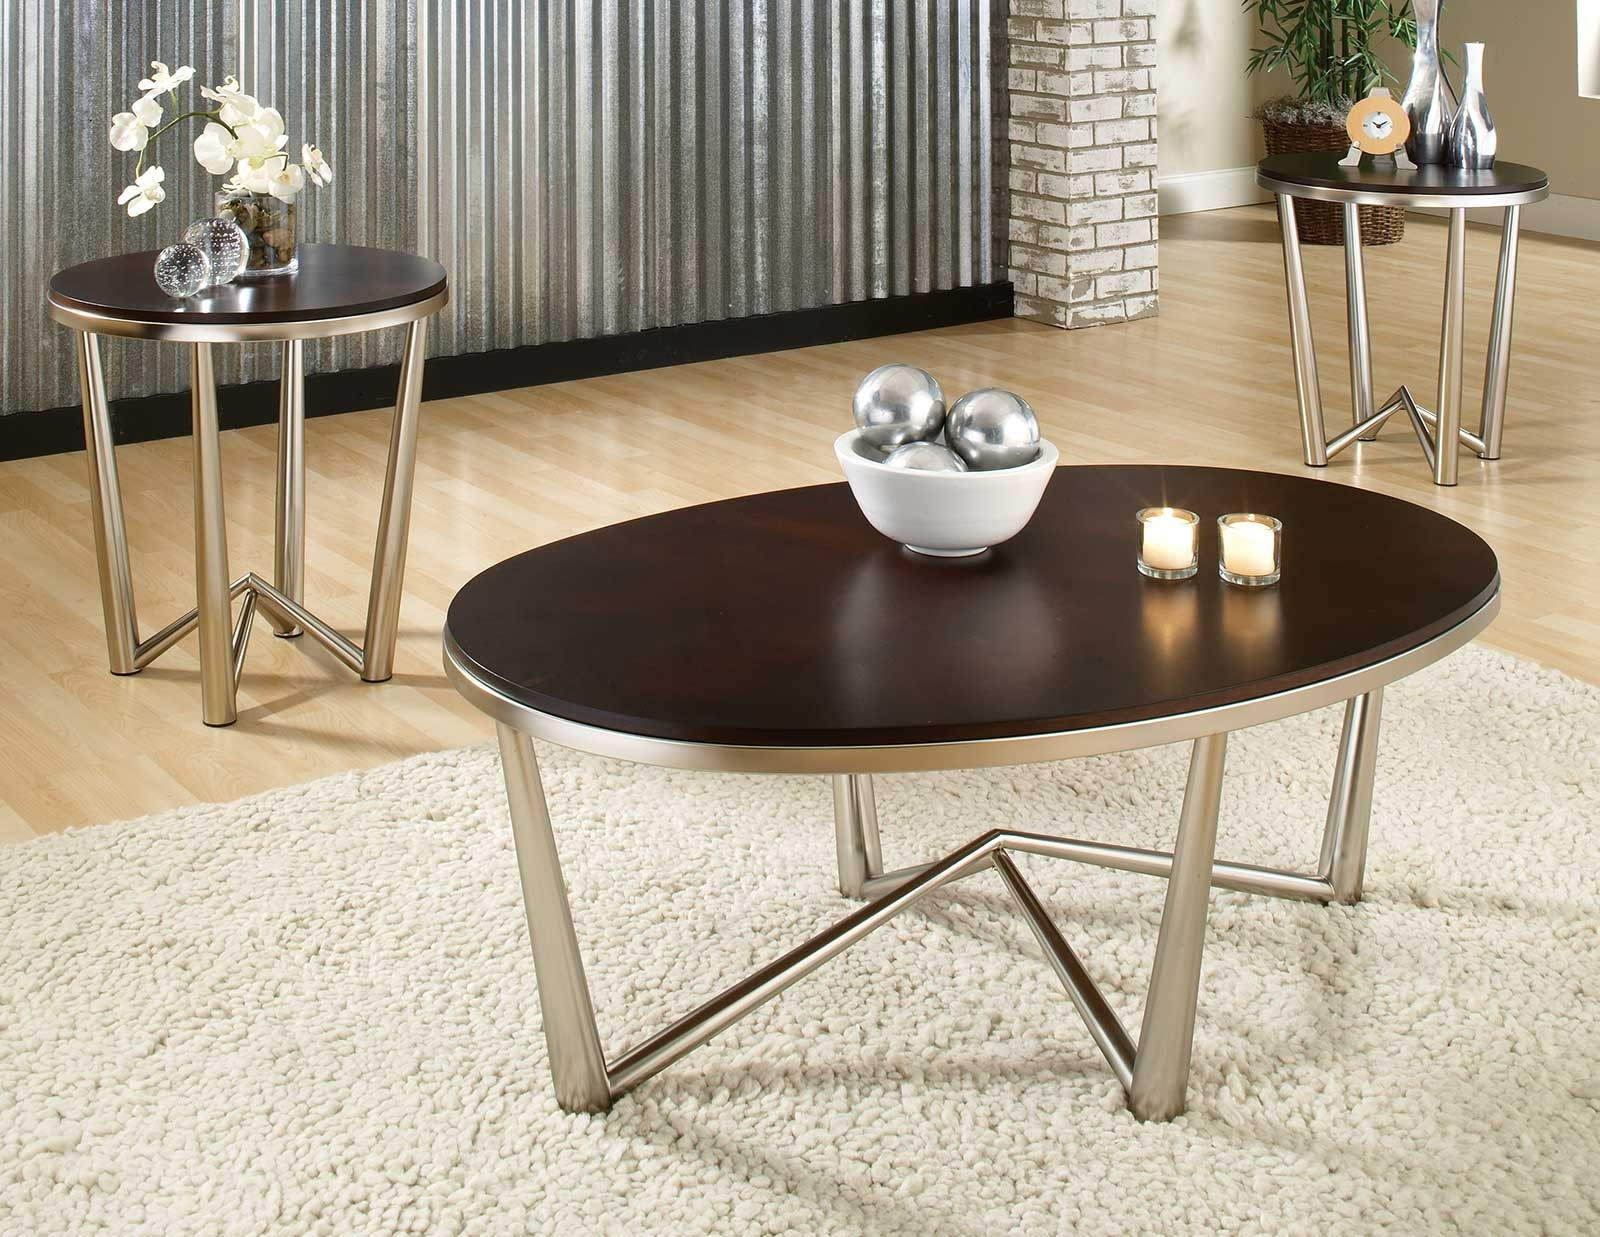 brushed silver end tables img small accent table cosmo three pack occasional set steve from box frame marble coffee toronto metal legs unicorn mission lamp piece dining round